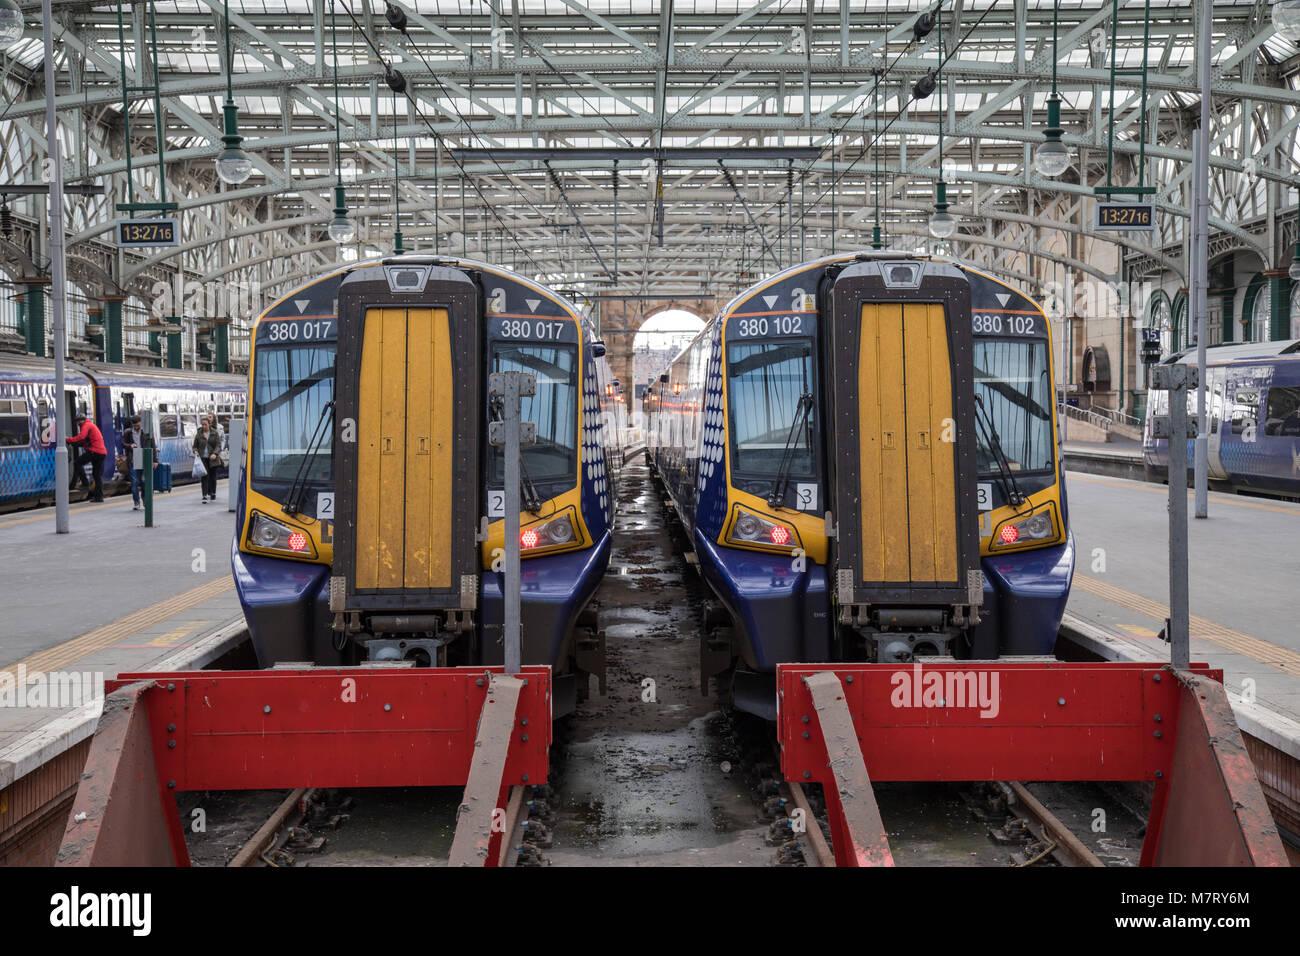 2 Siemens Class 380 Electric Trains side by side at Platforms 12 and 13 of Glasgow Central Train Station - Stock Image